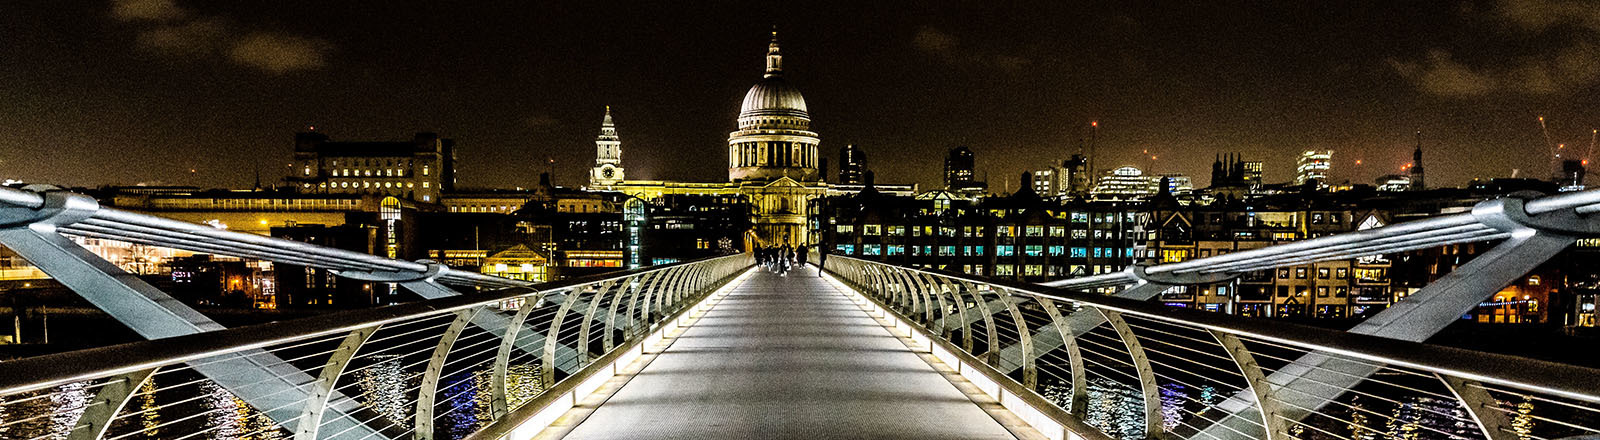 Blick auf die Millennium Bridge in London.